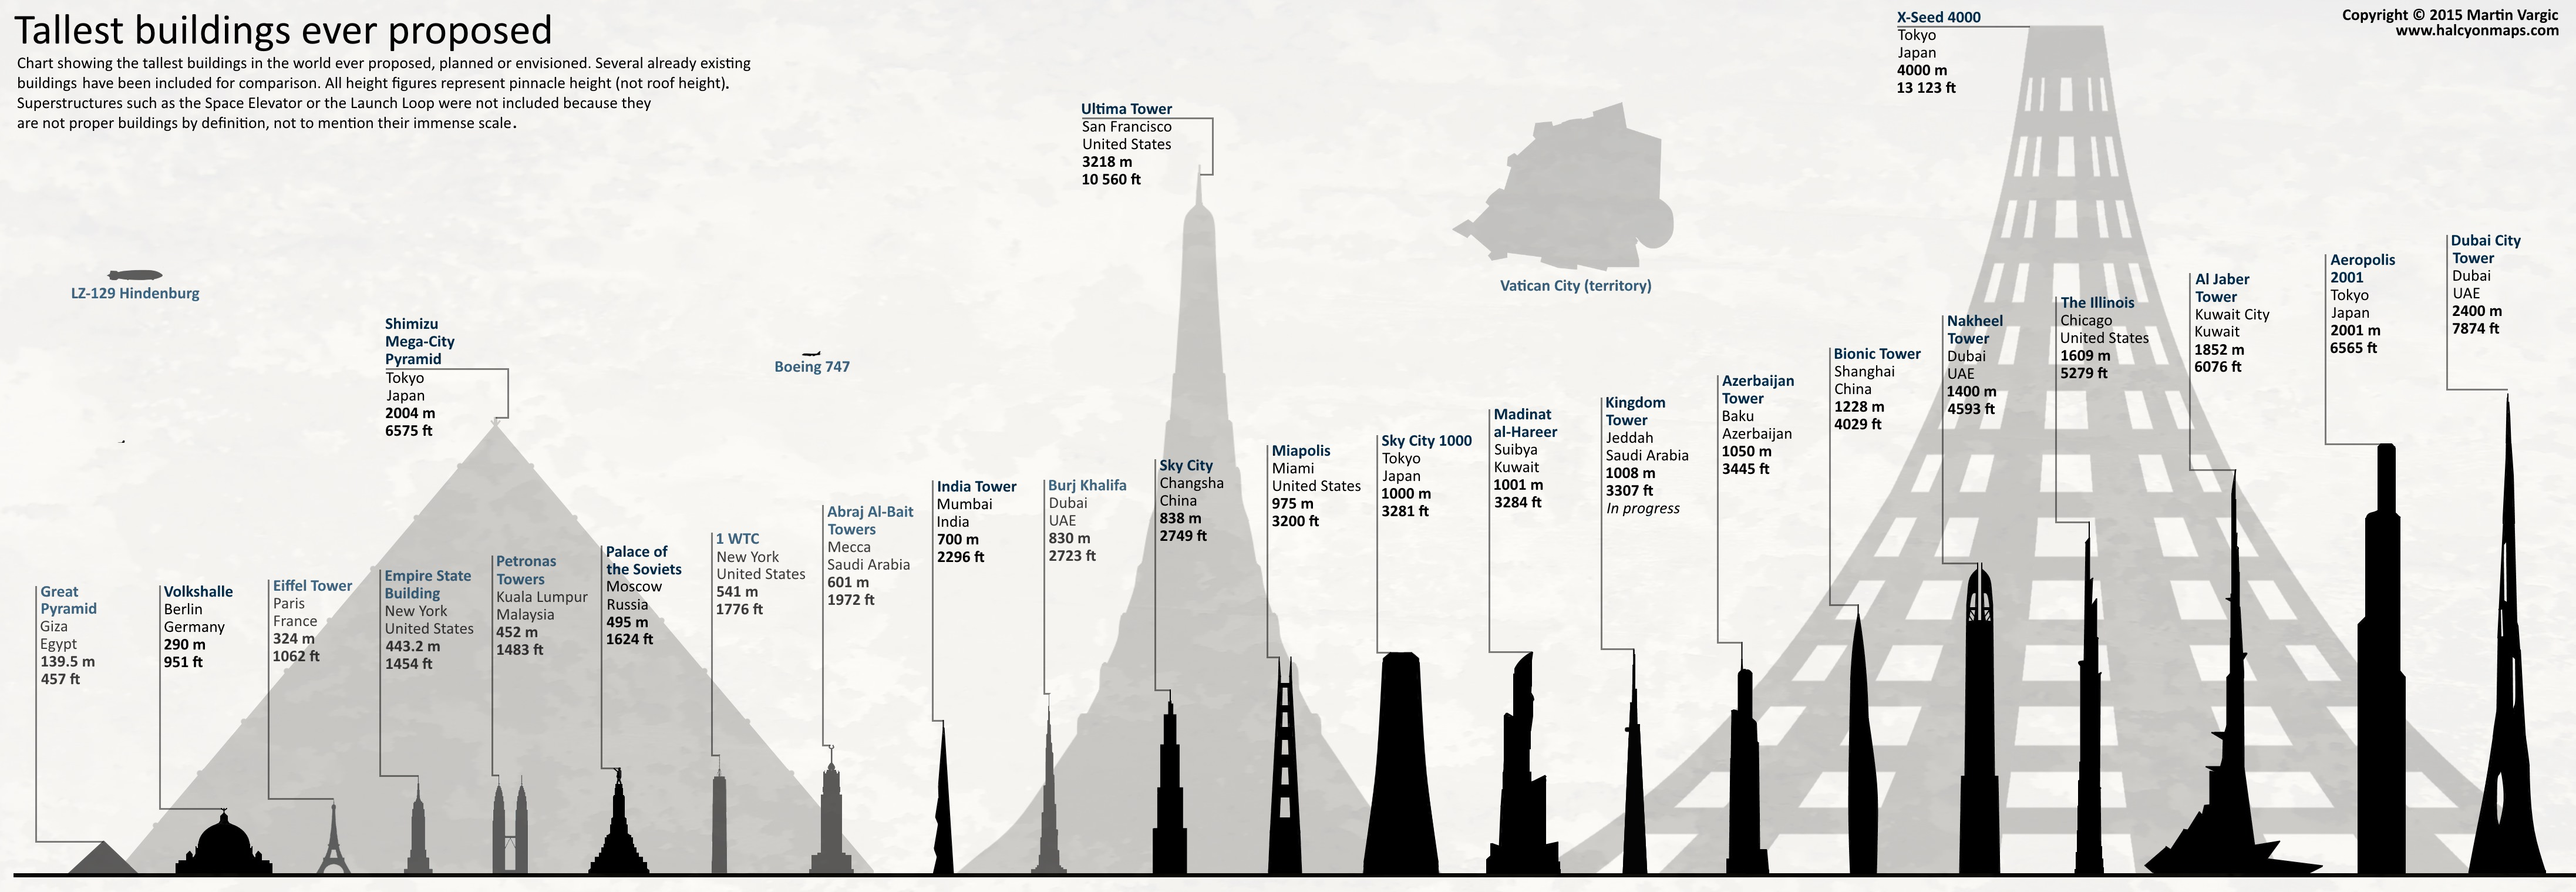 tallest planned buildings chart by jaysimons - Future Tallest Building In The World Under Construction